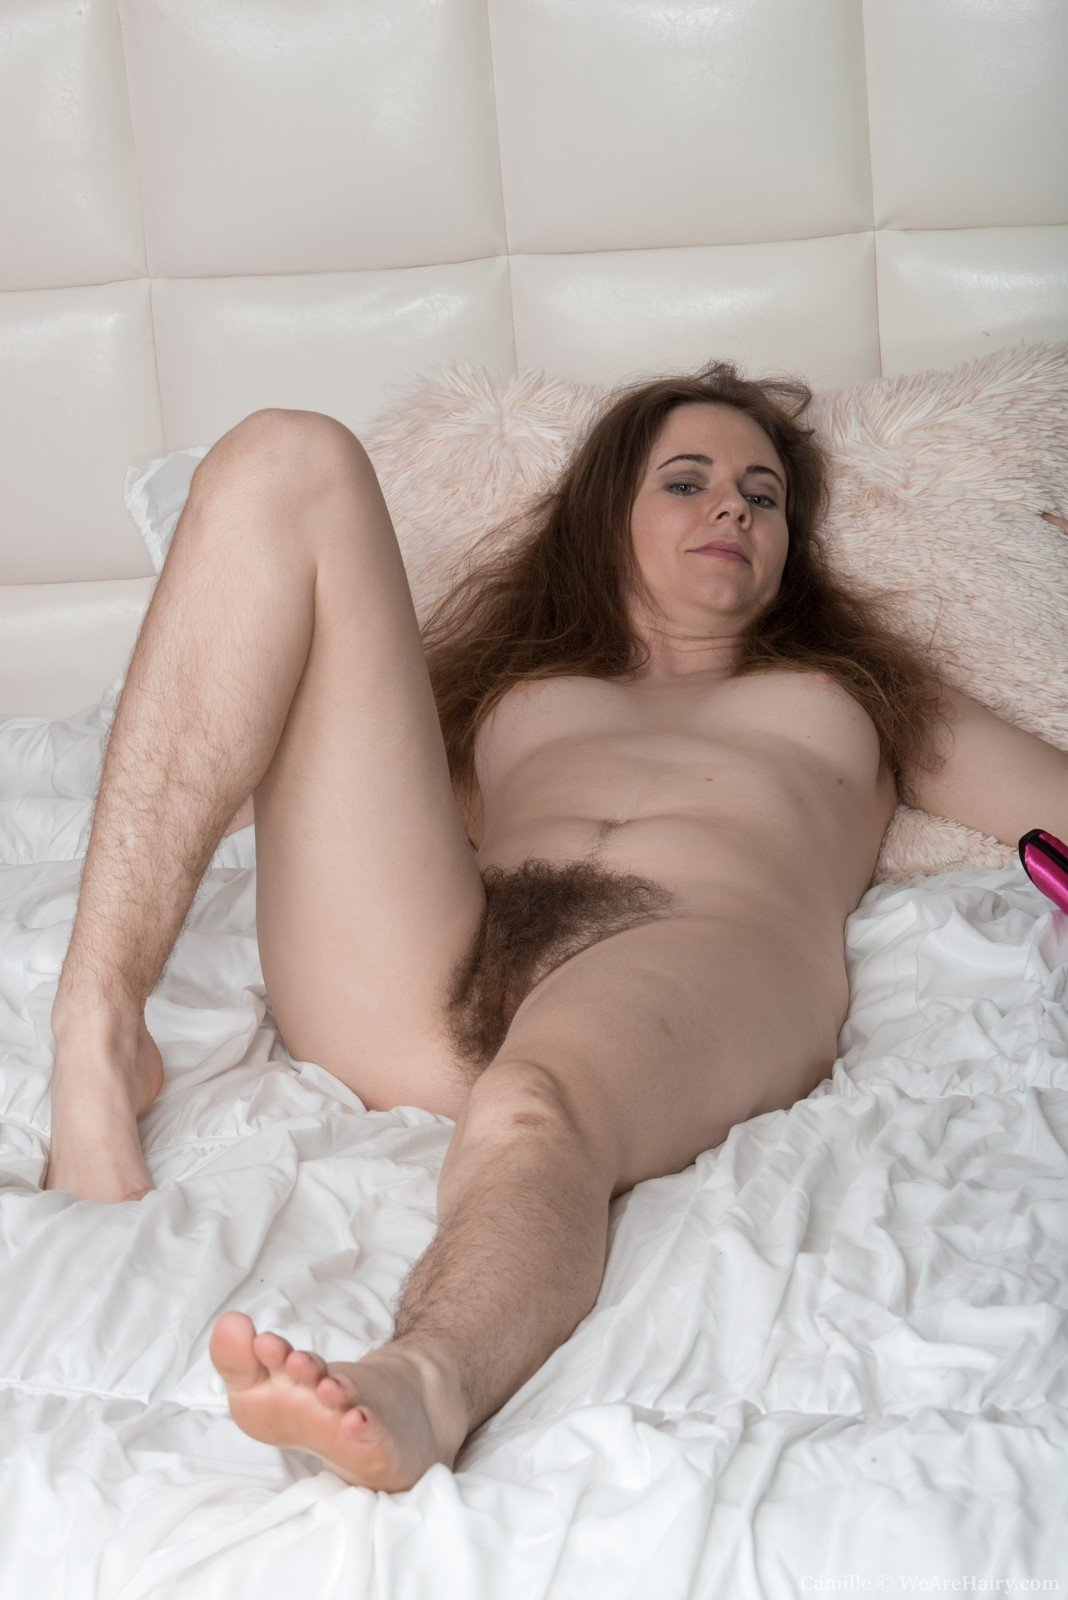 Free porn webcam no credicard Husbands share wives with freinds